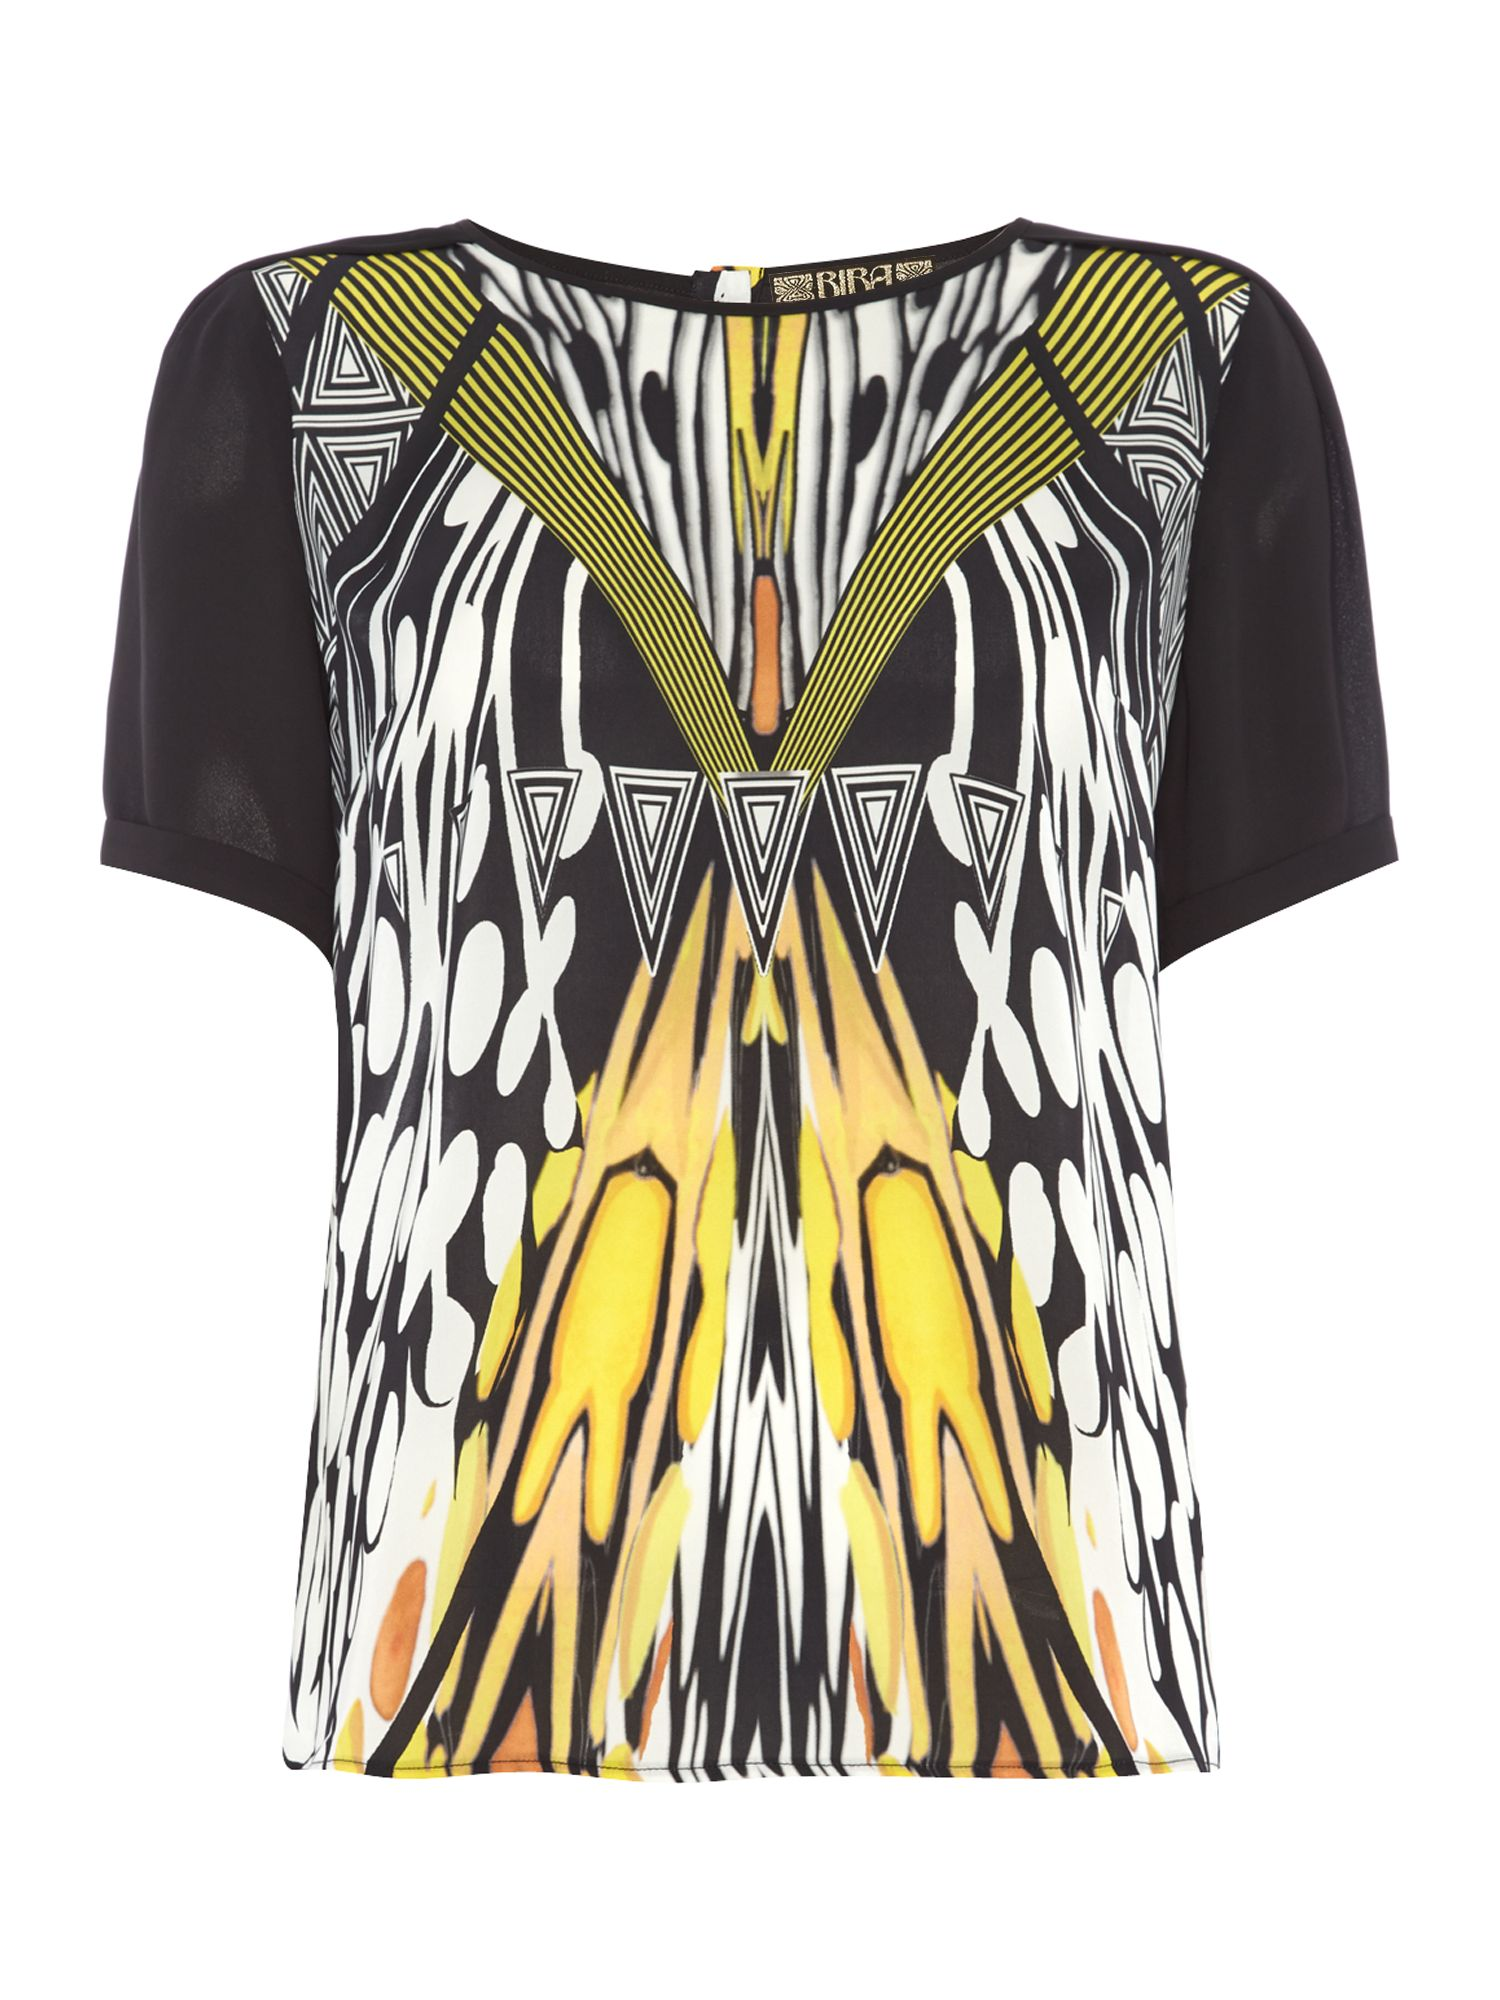 Graphic tribal print shell top